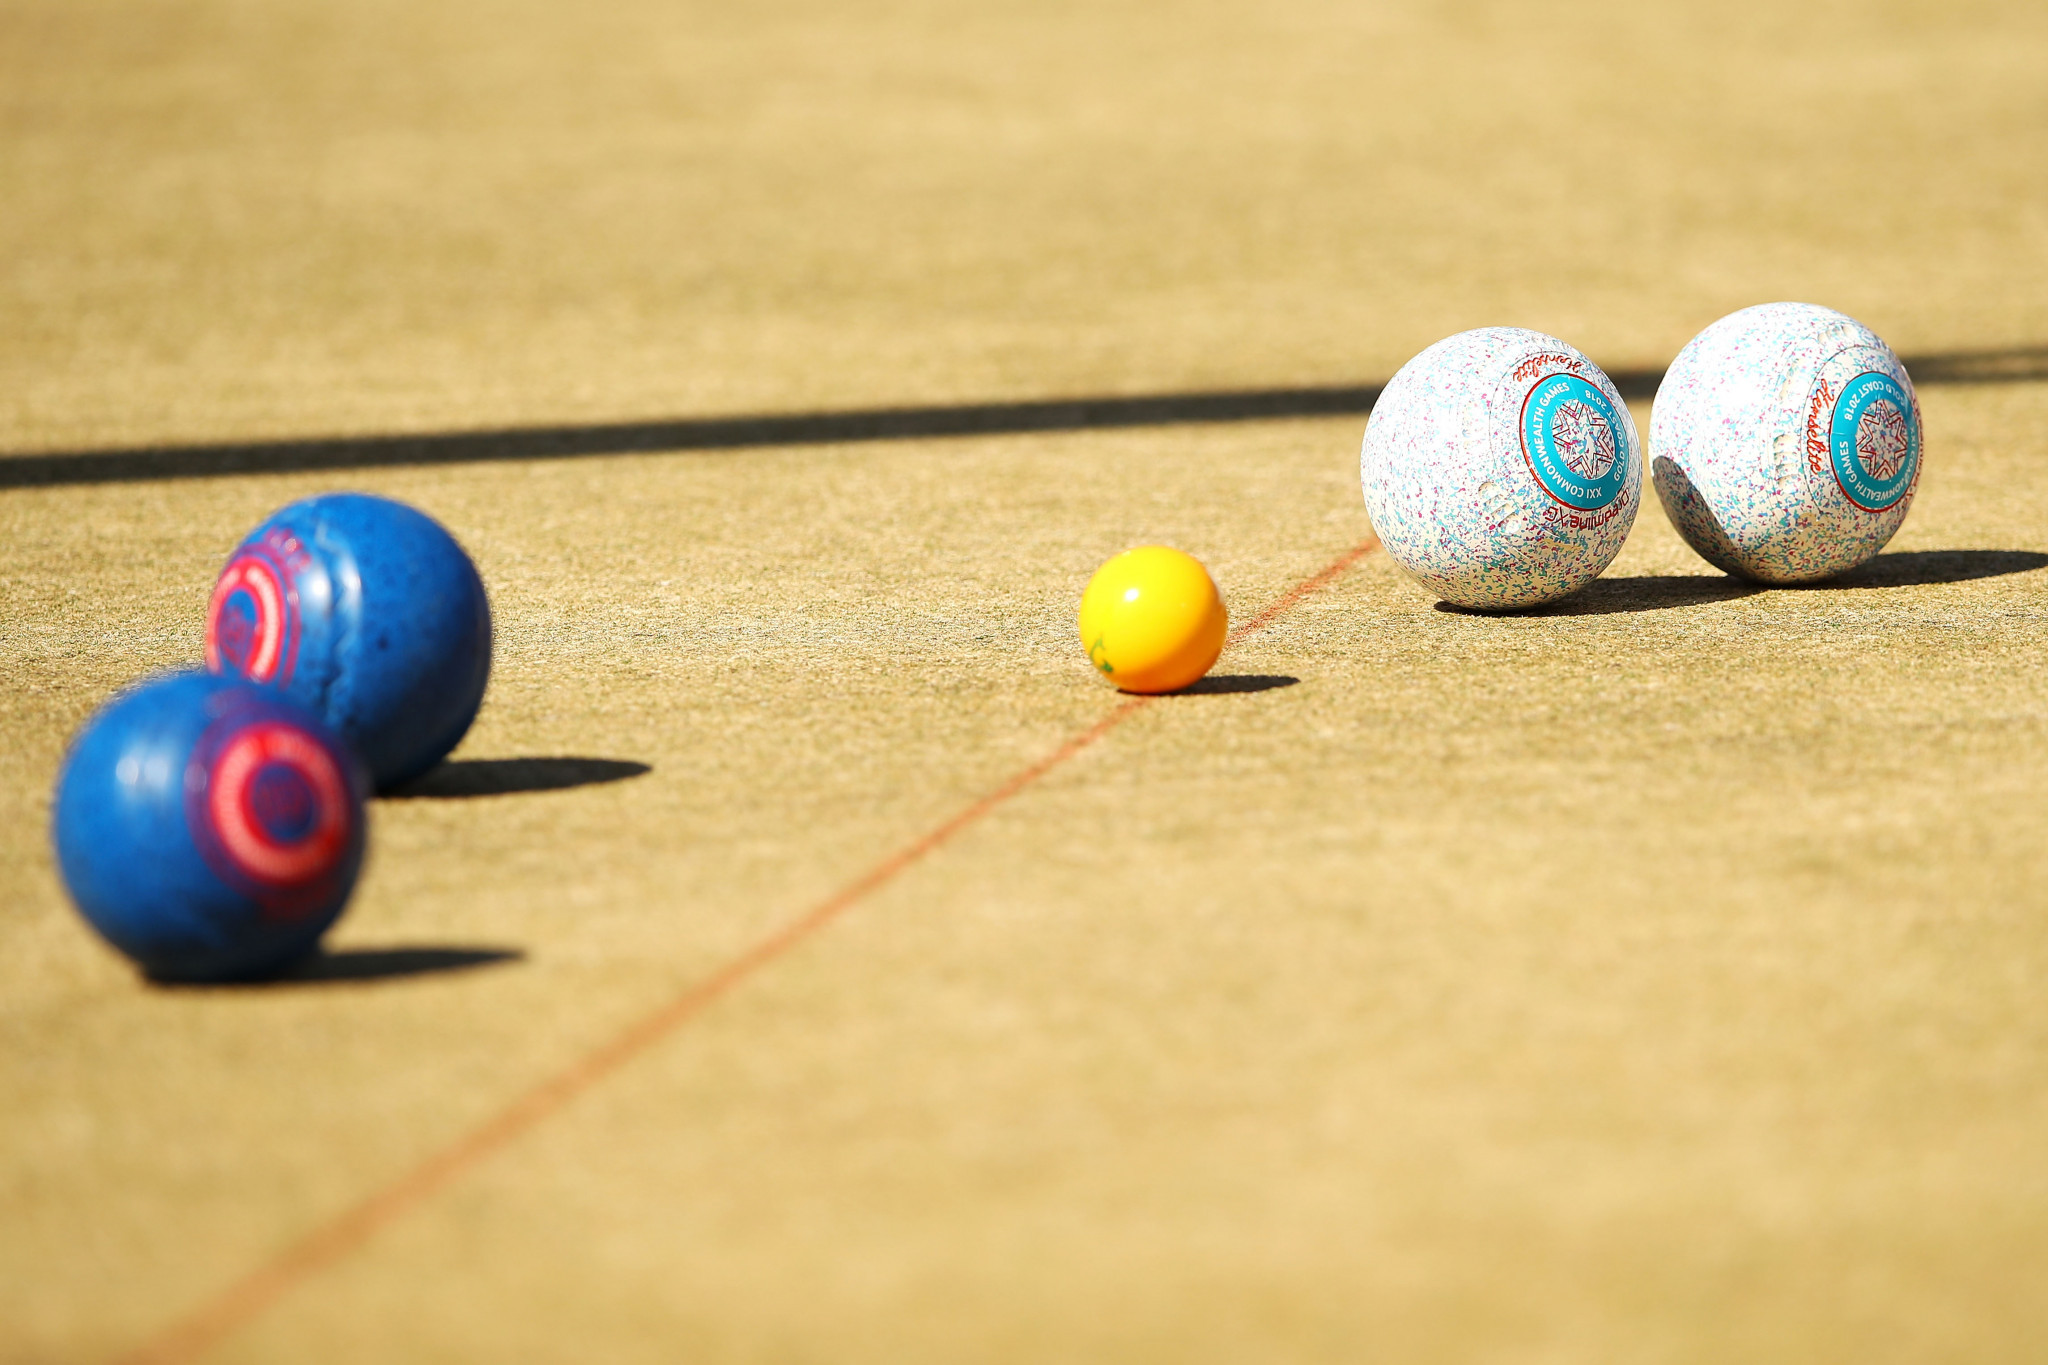 Darryl Clout will be World Bowls President and chairman until a biennial Council meeting is held at the 2022 Commonwealth Games ©Getty Images